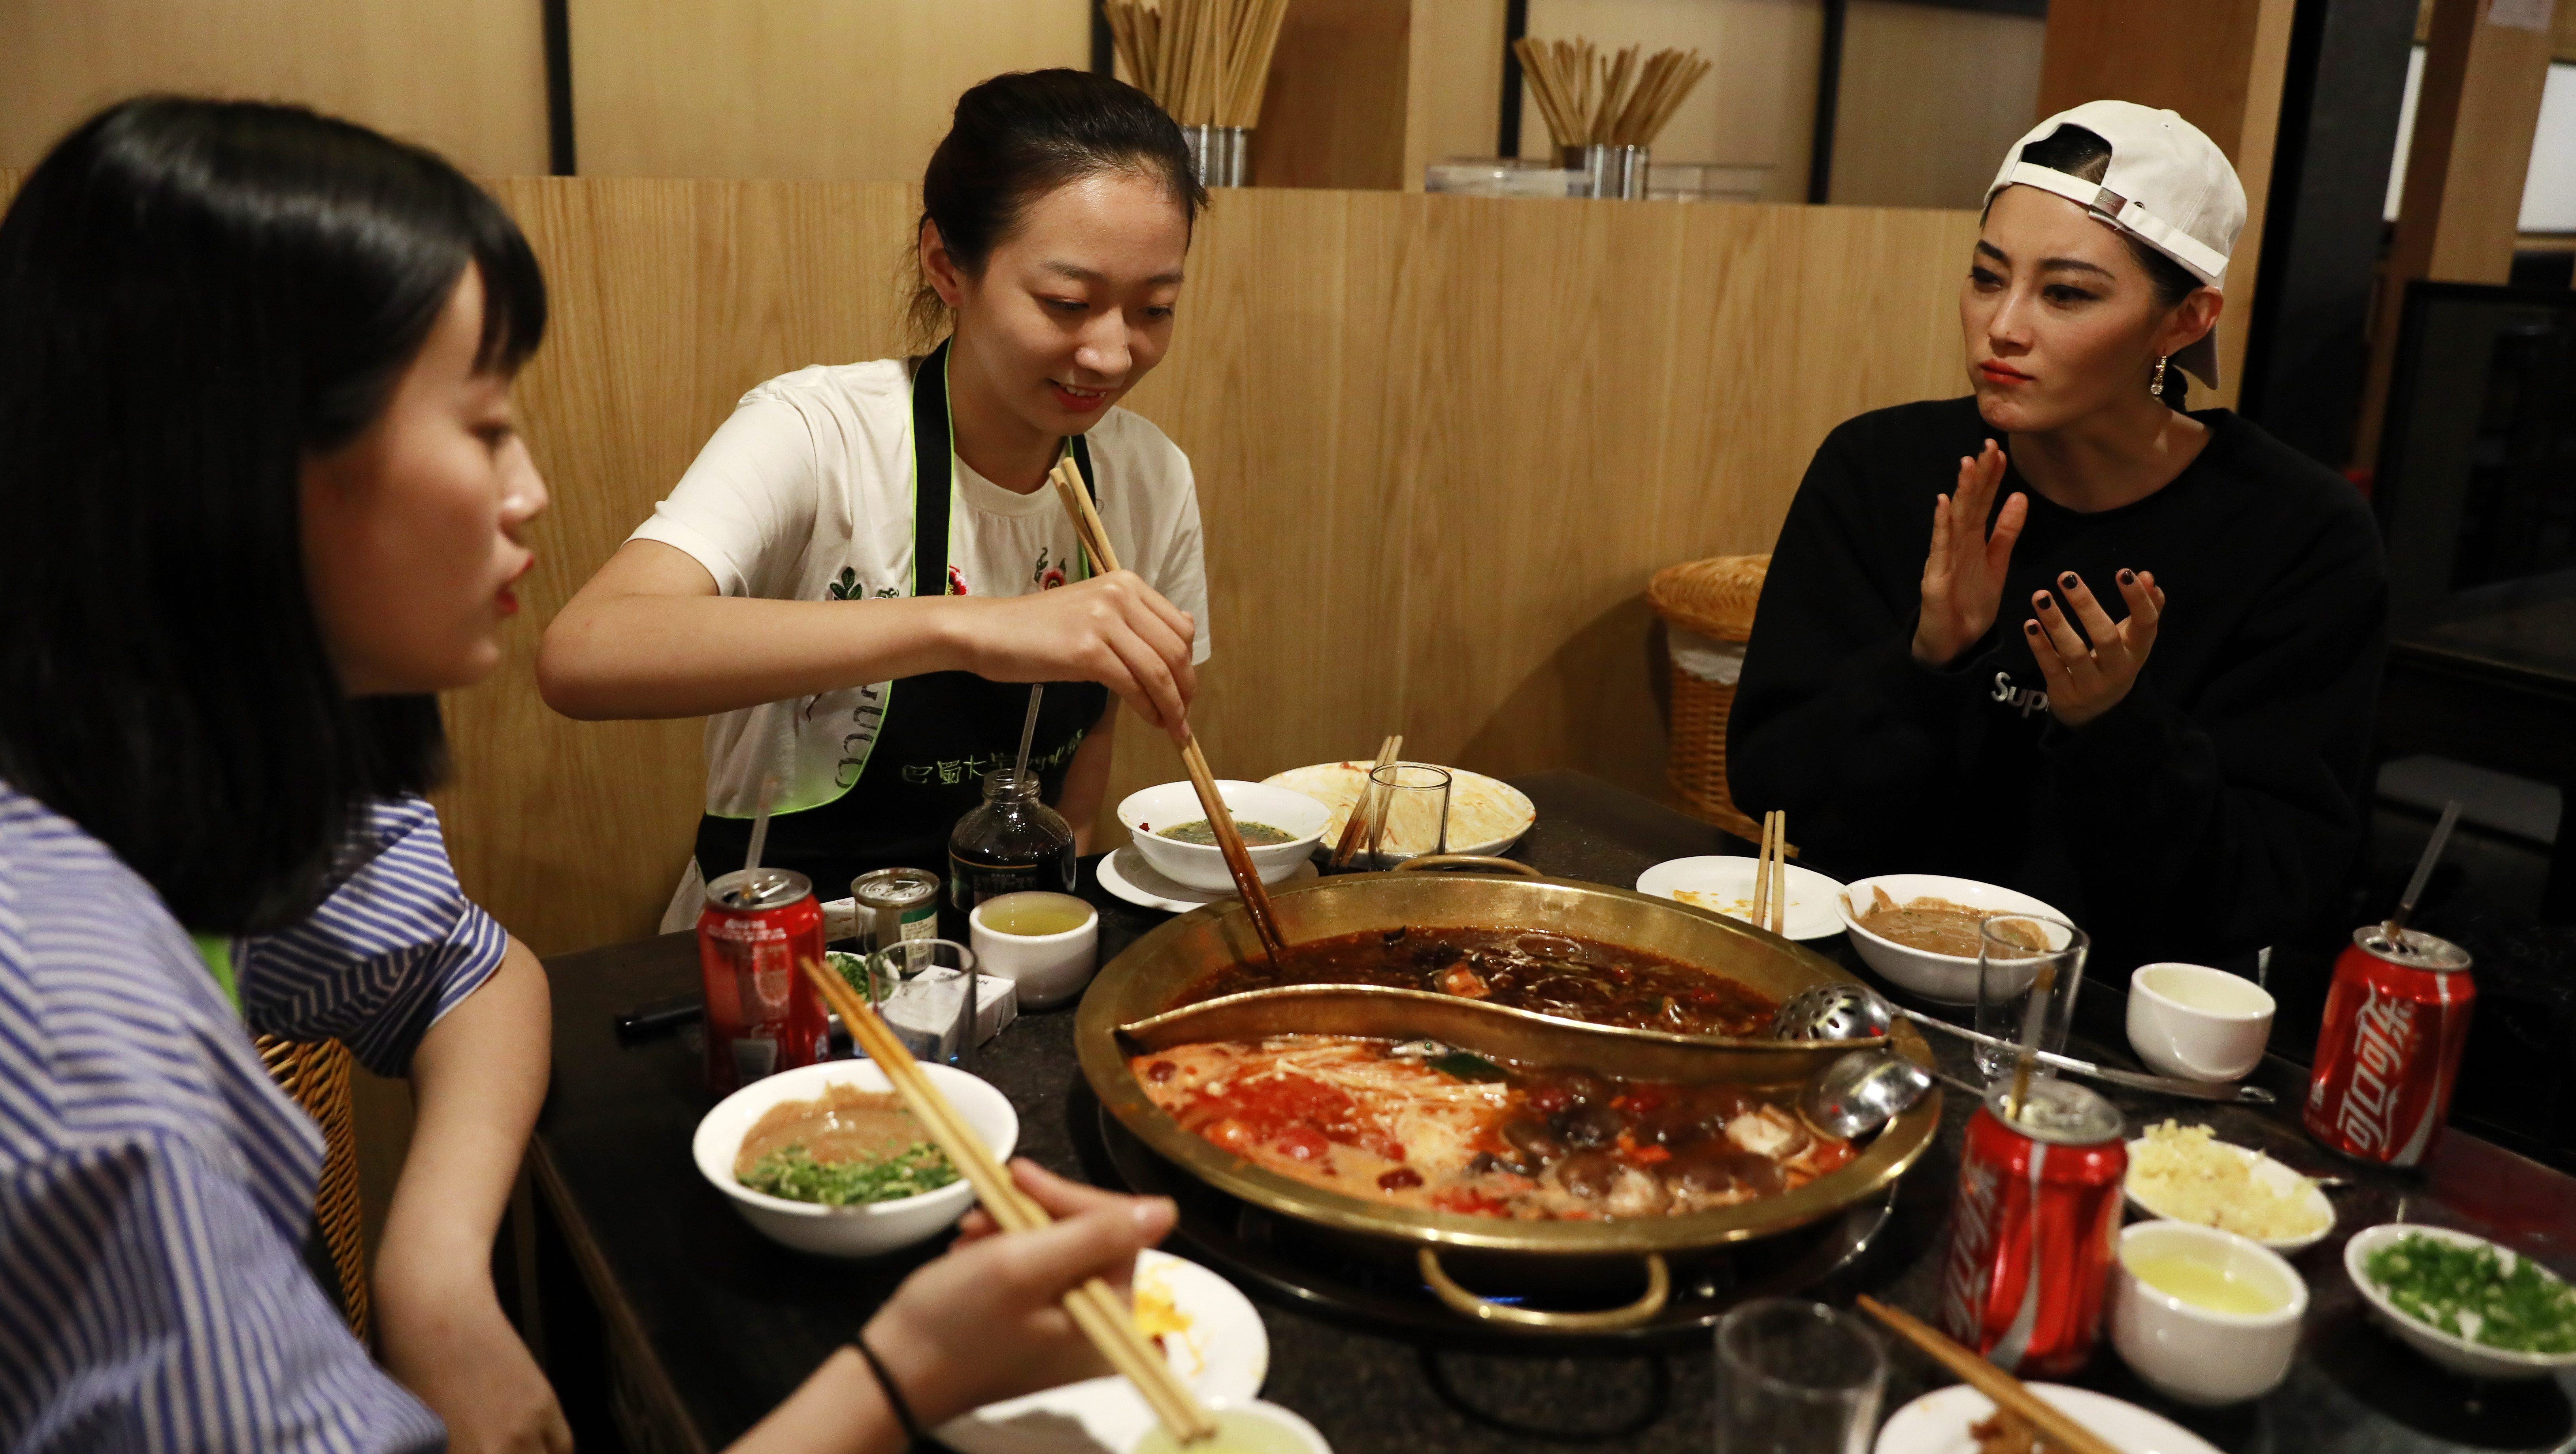 Chinese model Sun Yichao (R) and her juniors Jiang Ruiqi (L) and Li Yuzu from the same modelling agency have a hotpot dinner at a restaurant after the Melody Cashmere show during the Mercedes-Benz China Fashion Week at the Beijing Hotel banquet hall venue in Beijing, China, 29 March 2017. One of China's most promising up and coming fashion model, the 23-year-old Sun Yichao is a striking figure on the runway. At 1.79 metres tall, the svelte model with beautiful chiseled features is high in demand domestically and abroad, having walked the catwalks of Paris, Milan and New York's fashion weeks for major brands like Christian Dior and Chanel. She was also one of the recipients of the 'China Top Ten Professional Fashion Model Award' in 2016.